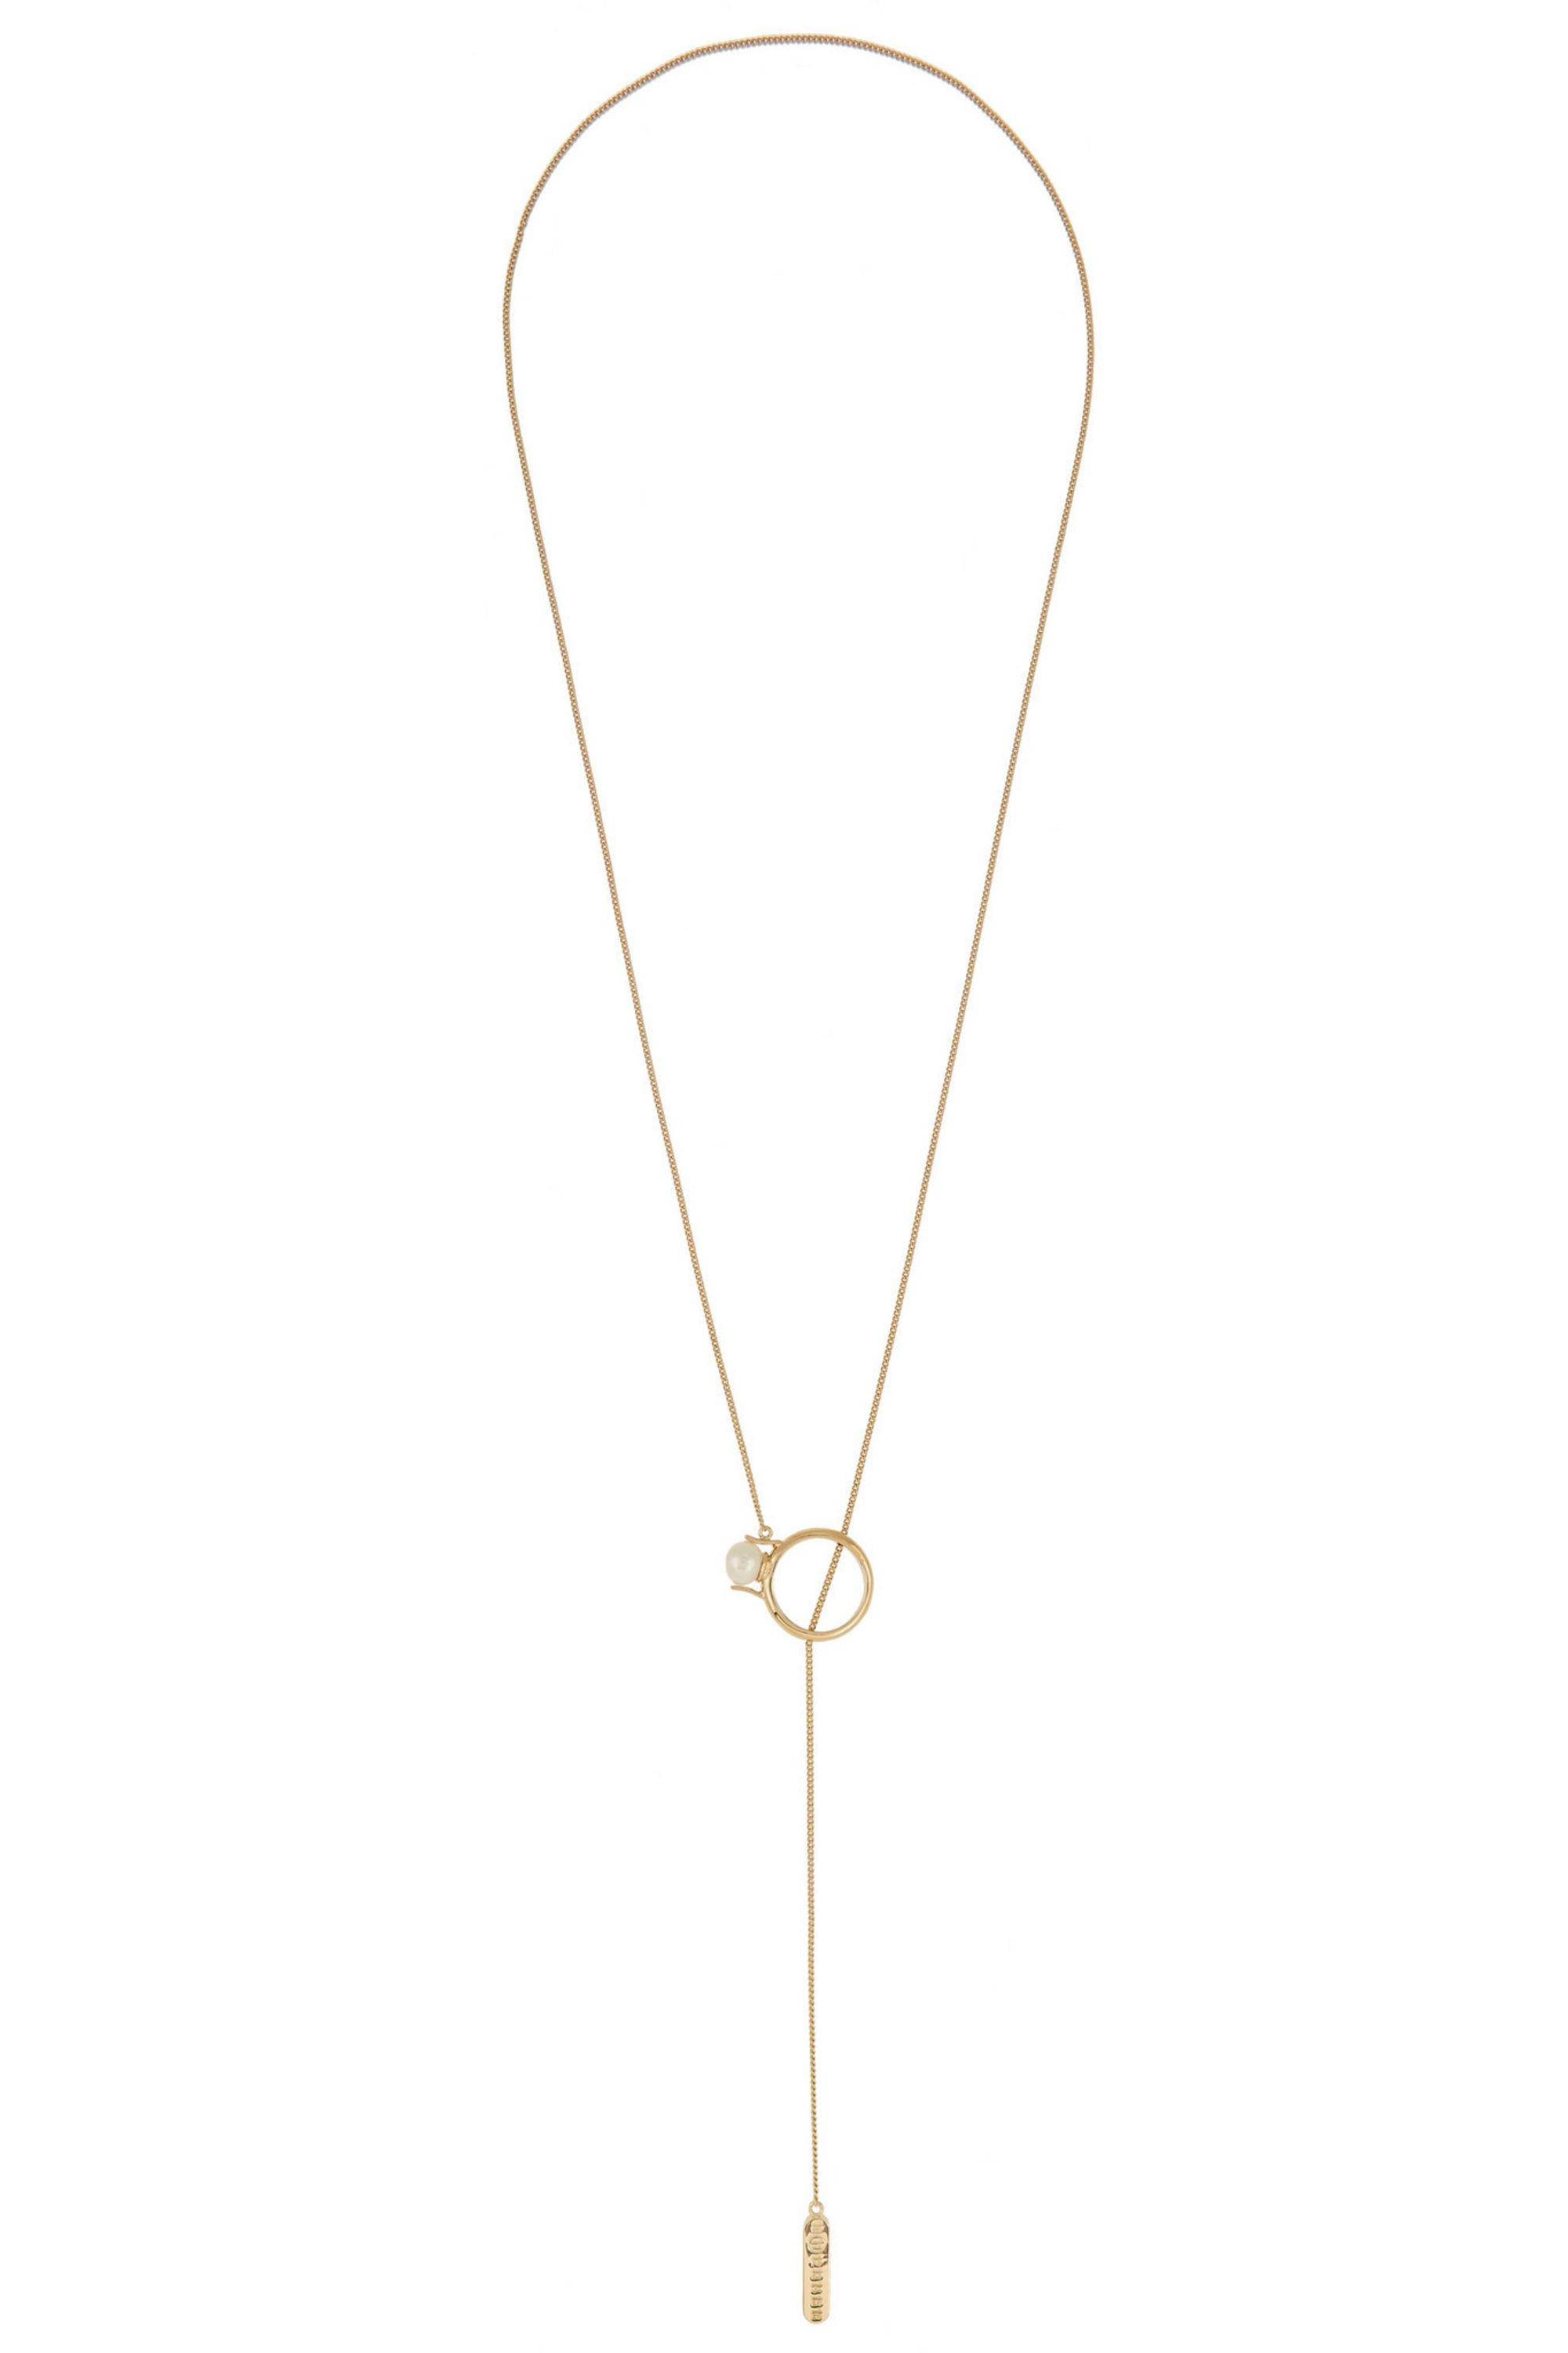 Maison Margiela Gold-plated faux pearl necklace